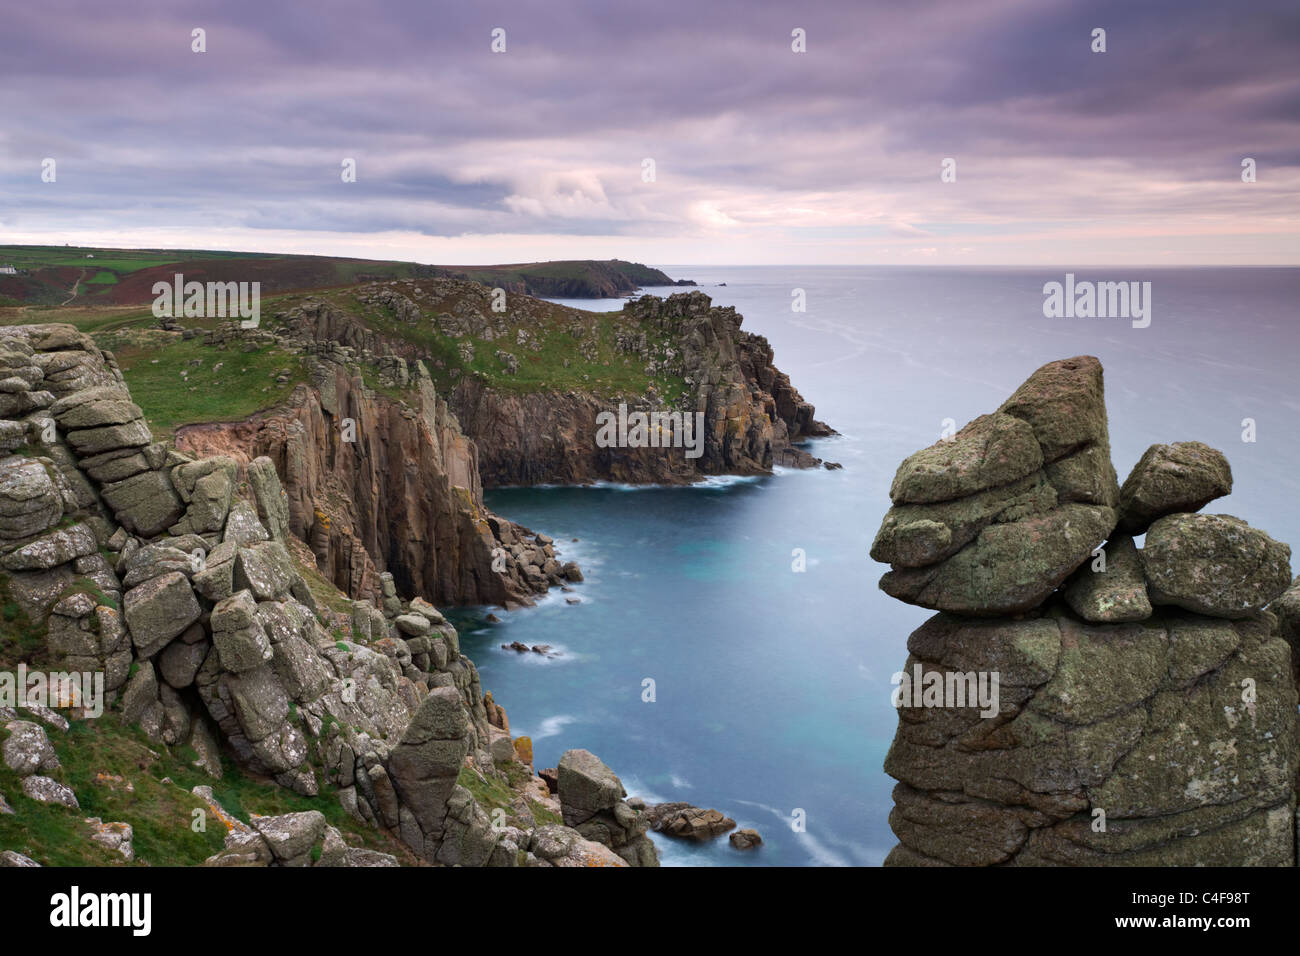 Looking across Zawn Trevilley from the clifftops at Pordenack Point towards Carn Boel, Land's End, Cornwall, - Stock Image